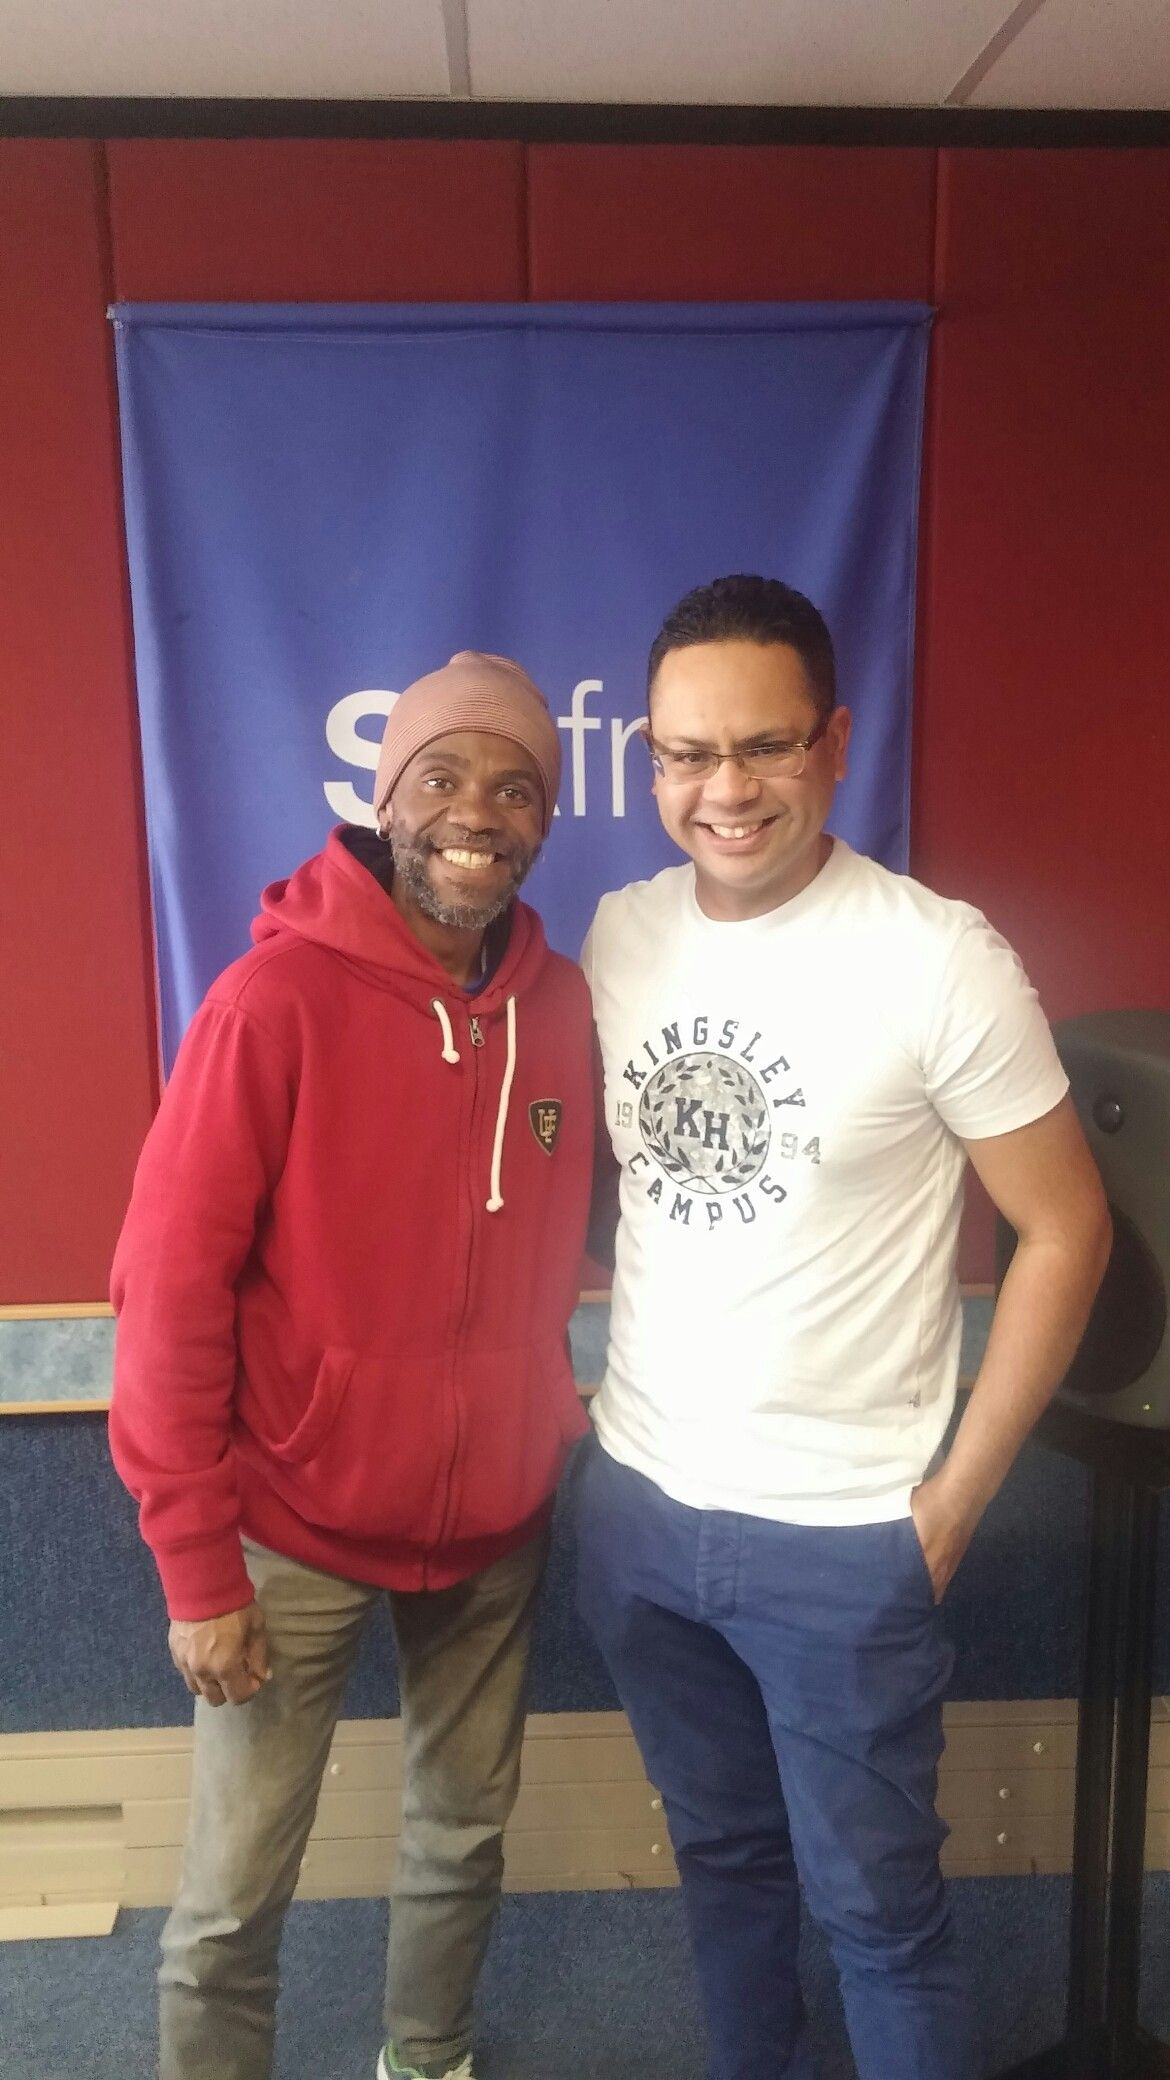 Safm The Lifestyle Show 19 May 2017 With Host Mandla Shongwe Southafrica Wine Miguelchan Tsogowine Wine Journal Lifestyle Wine Lovers